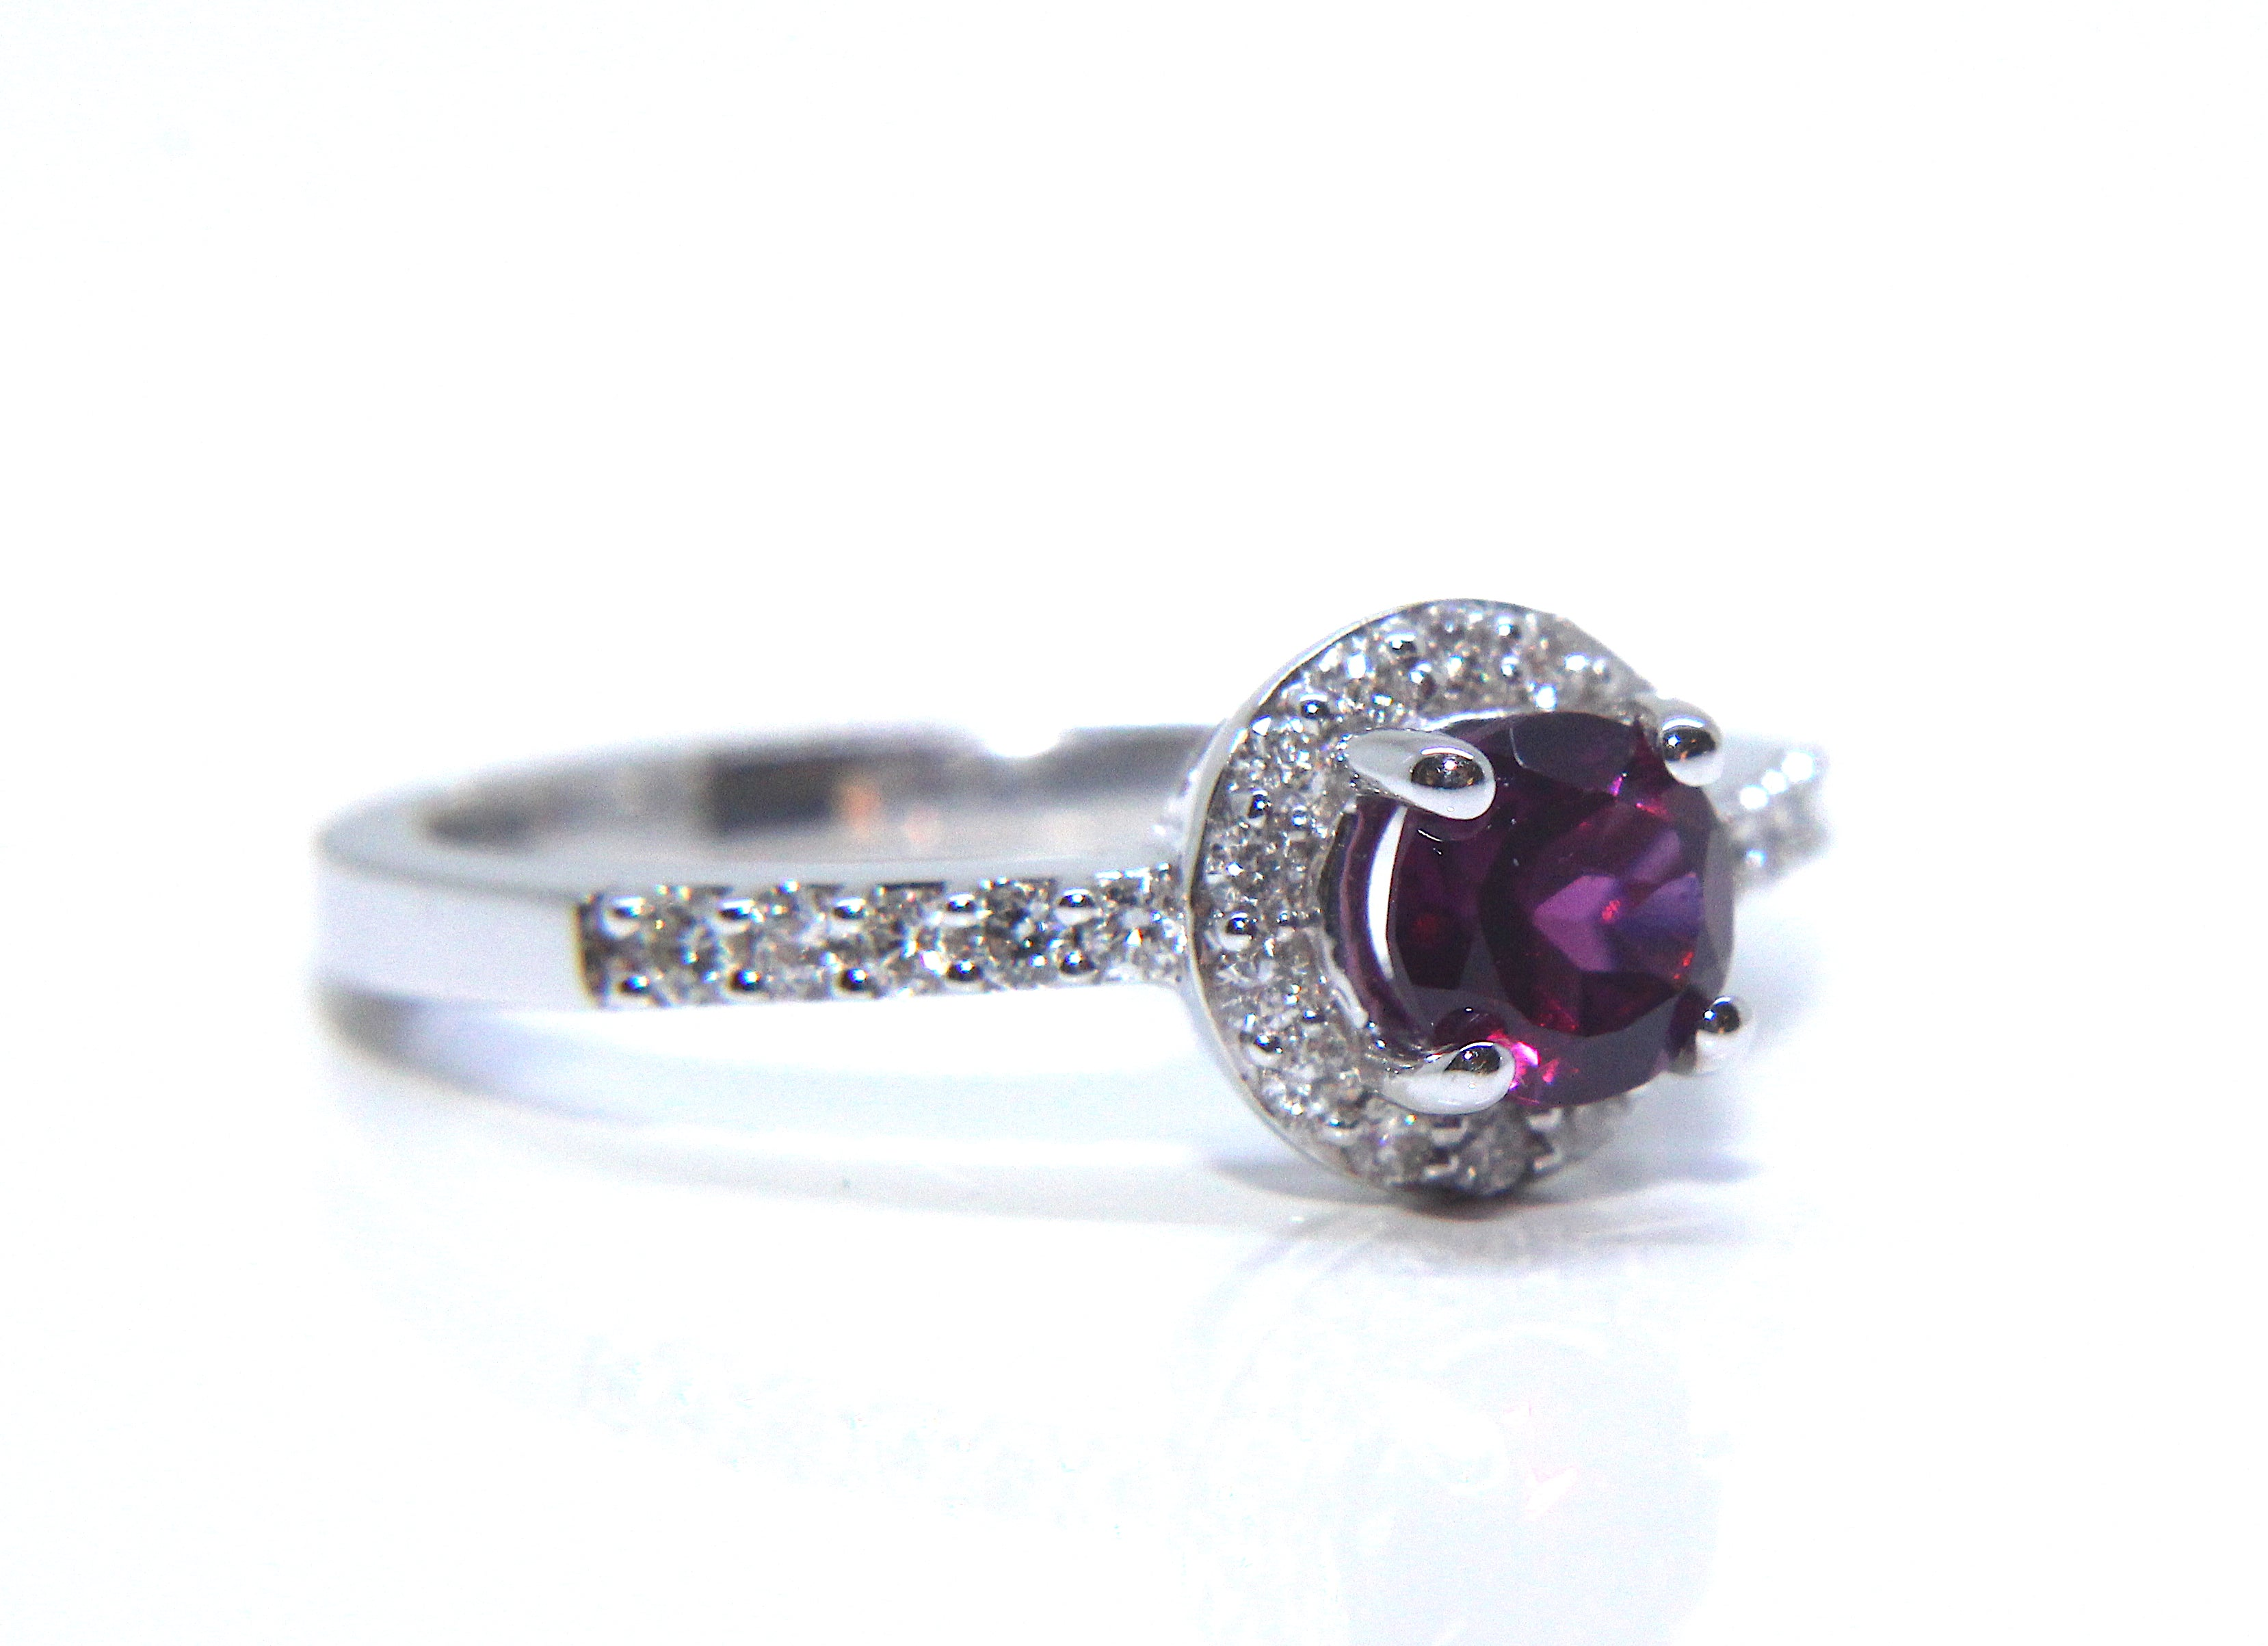 garnet diamond products emmakrafftjewellery ring and